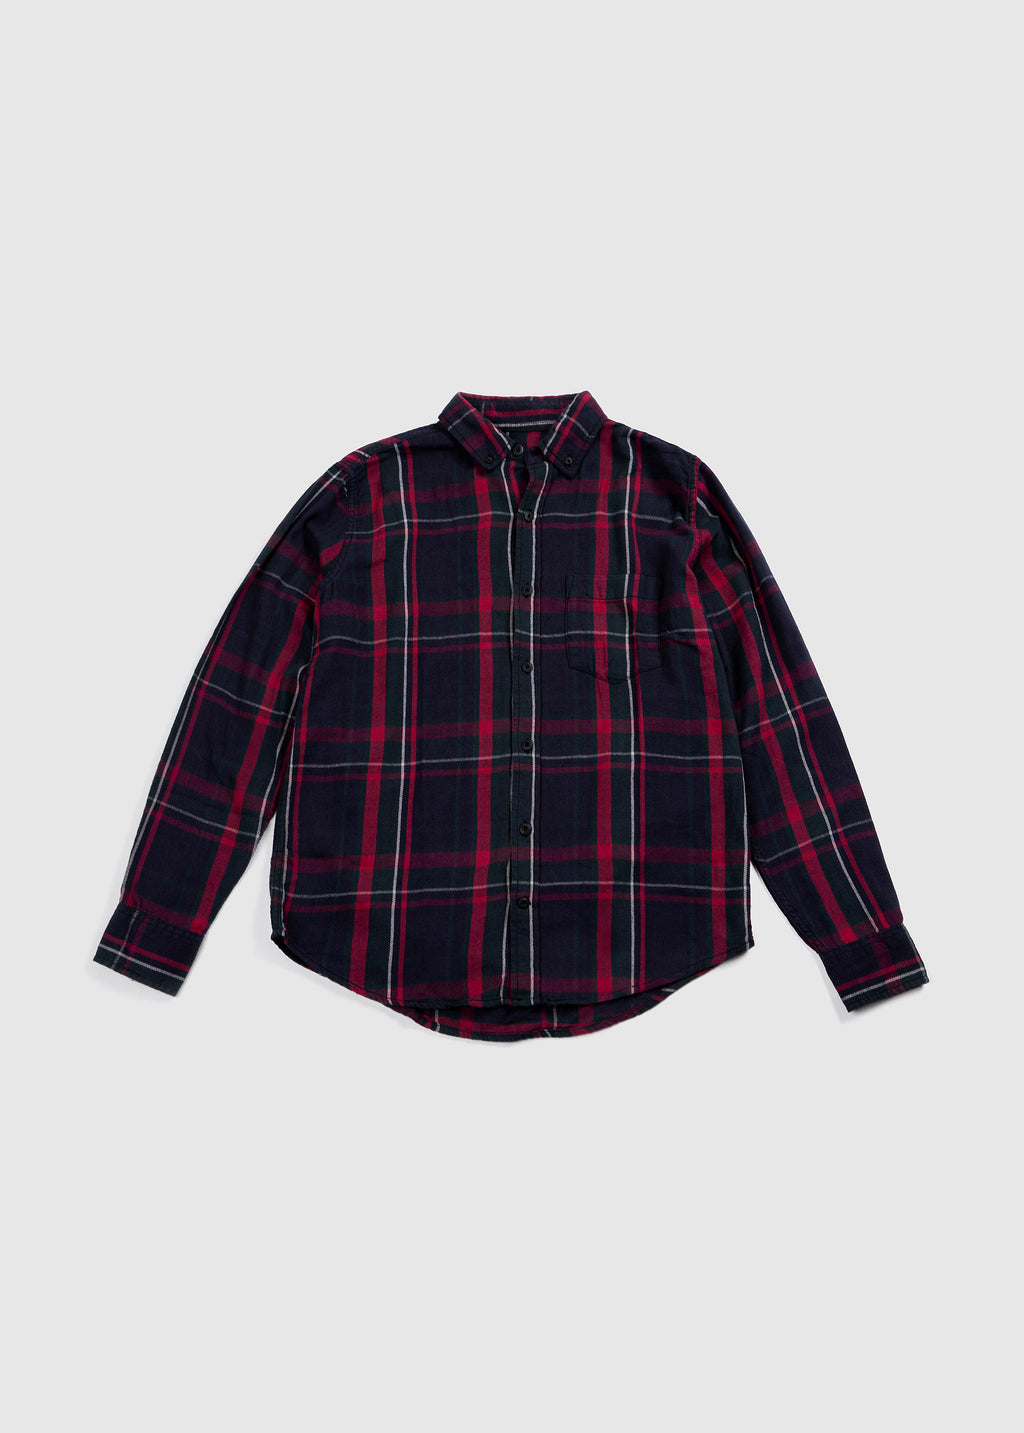 SHIRT L/S BLACK FW